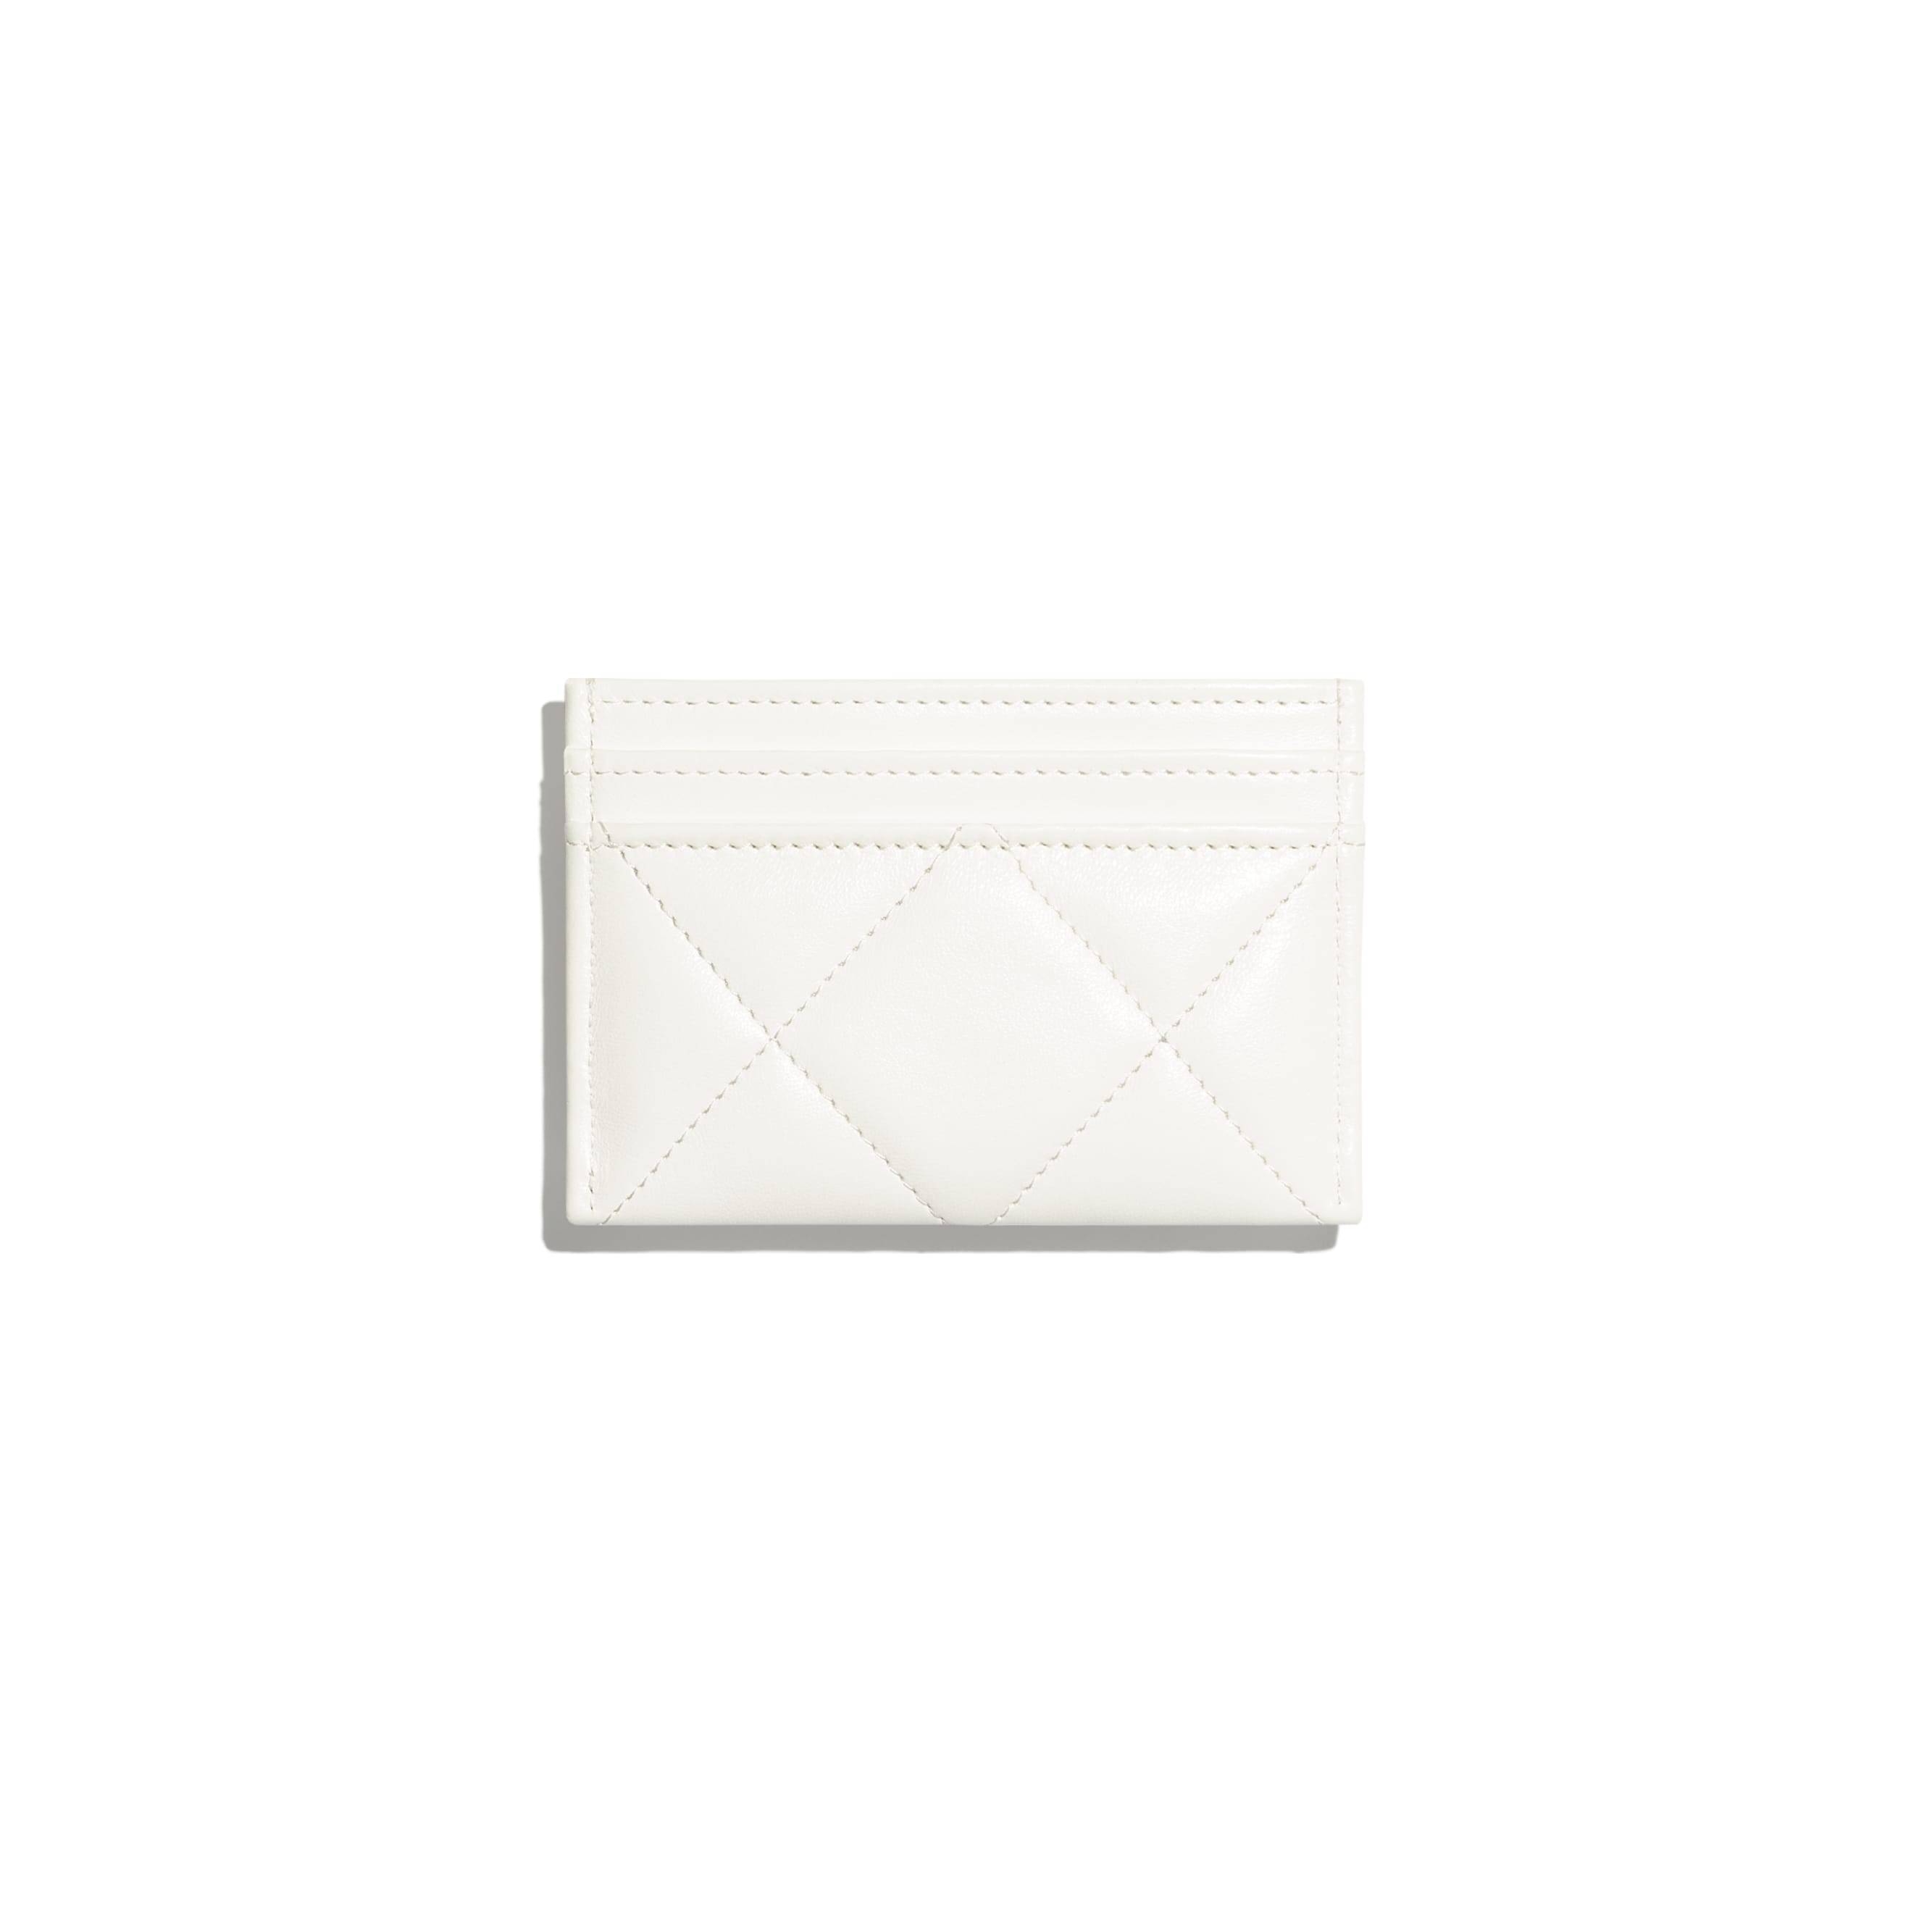 CHANEL 19 Card Holder - White - Lambskin, Gold-Tone, Silver-Tone & Ruthenium-Finish Metal - CHANEL - Alternative view - see standard sized version